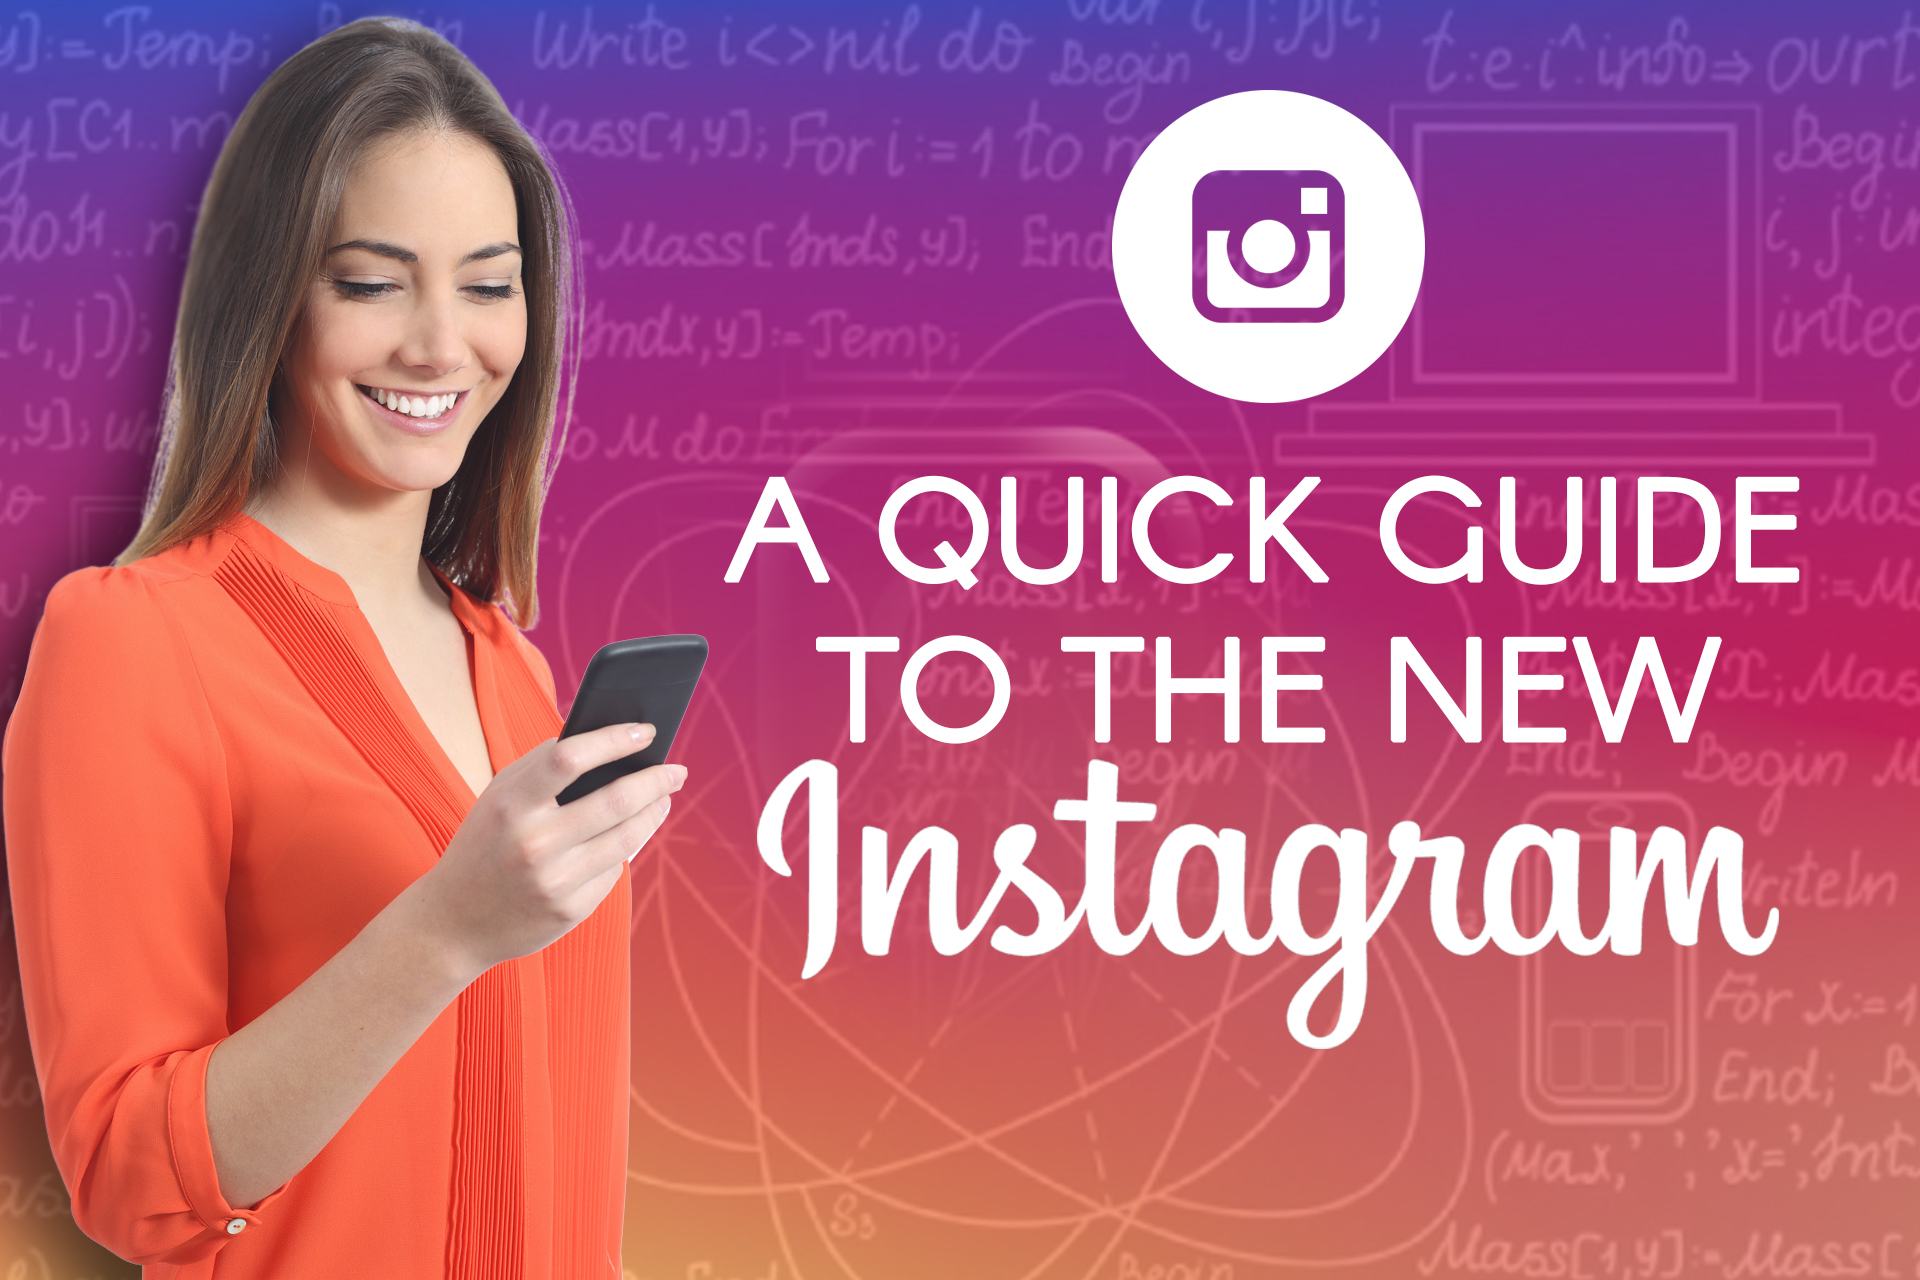 Instagram's Fakeout! Did You Buy In? A Quick Guide To The New Instagram